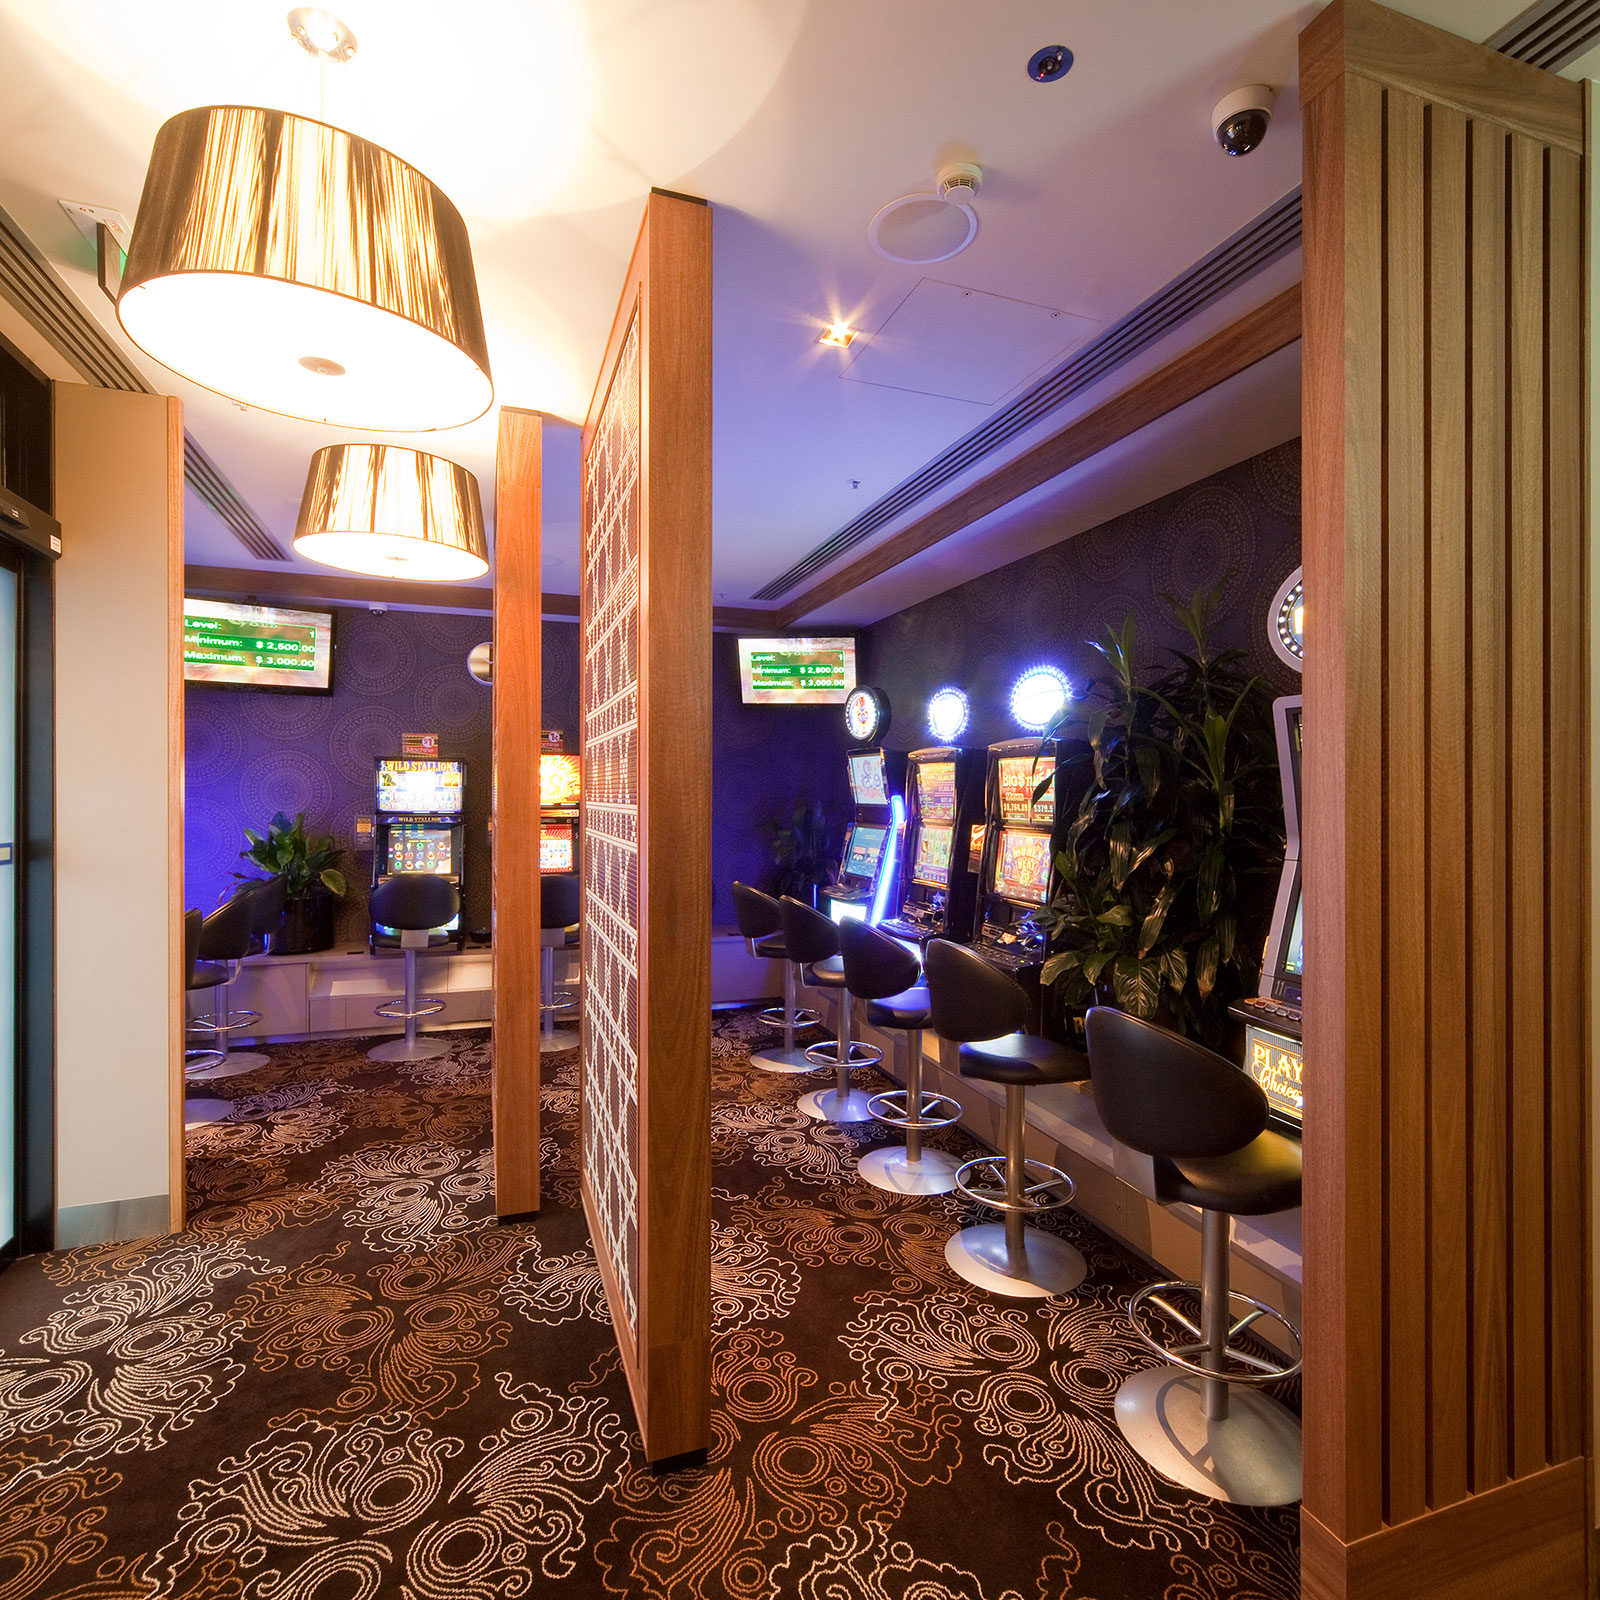 verandah lighting. Reconfiguration Of The Hotel\u0027s Gaming Lounge Was Driven By Opportunity To Increase Revenue Improving Ambience And Accessibility Providing An Verandah Lighting